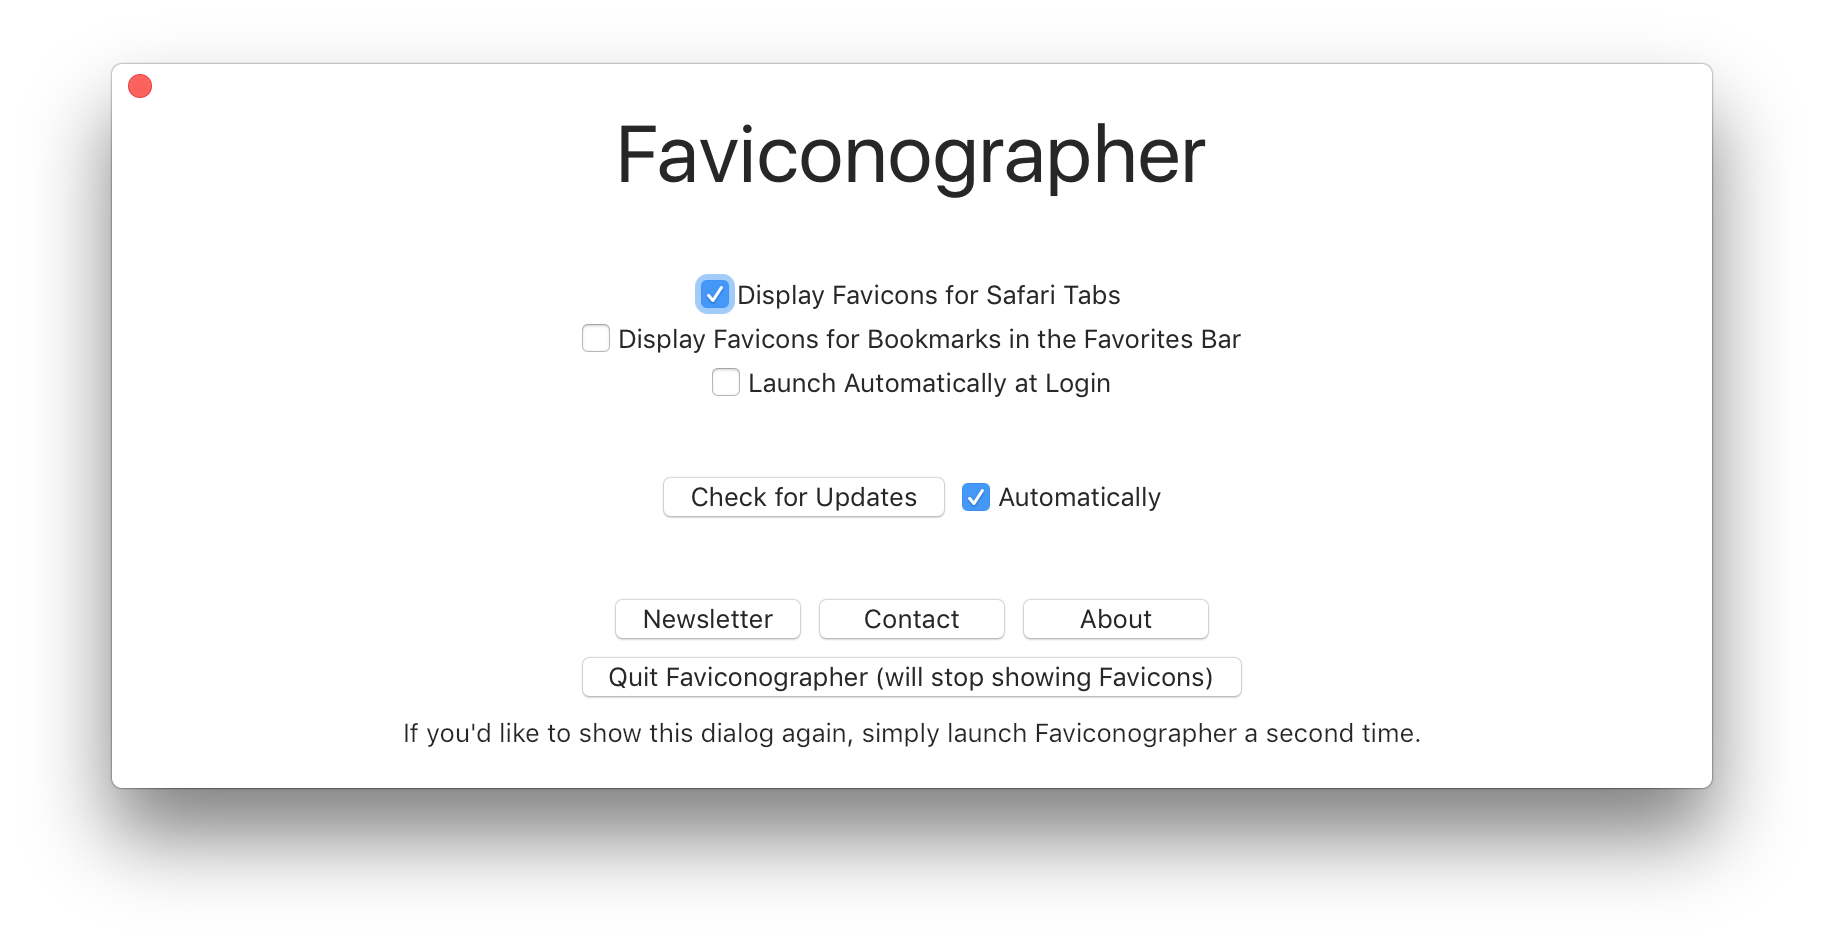 Screenshot of the Faviconographer Preferences screen